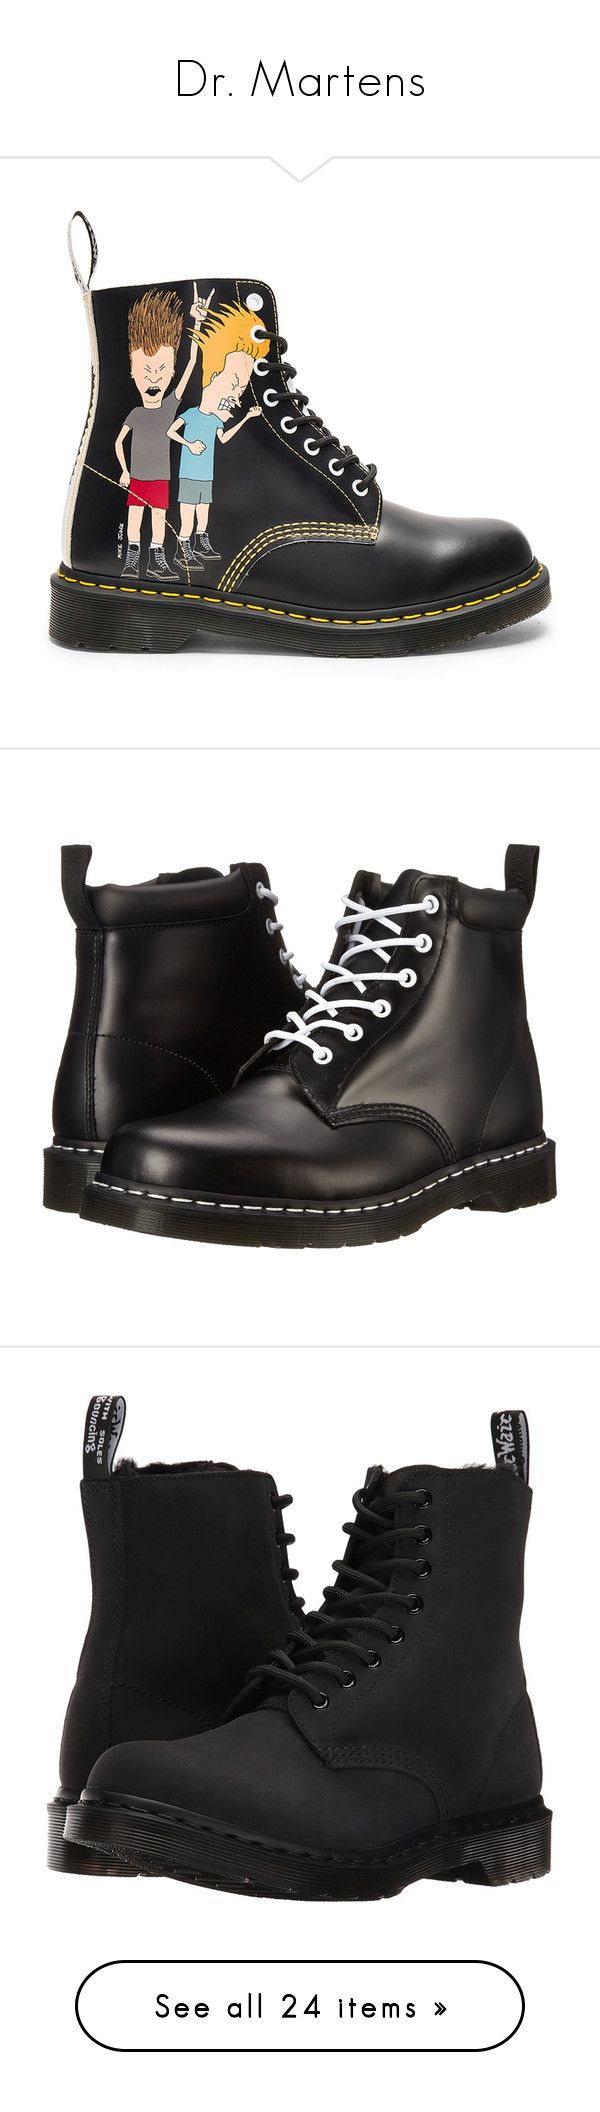 """""""Dr. Martens"""" by alexfabulouskilljoys ❤ liked on Polyvore featuring men's fashion, men's shoes, men's boots, boots, mens lace up boots, mens lace up shoes, dr martens mens boots, dr martens mens shoes, shoes and ankle booties"""